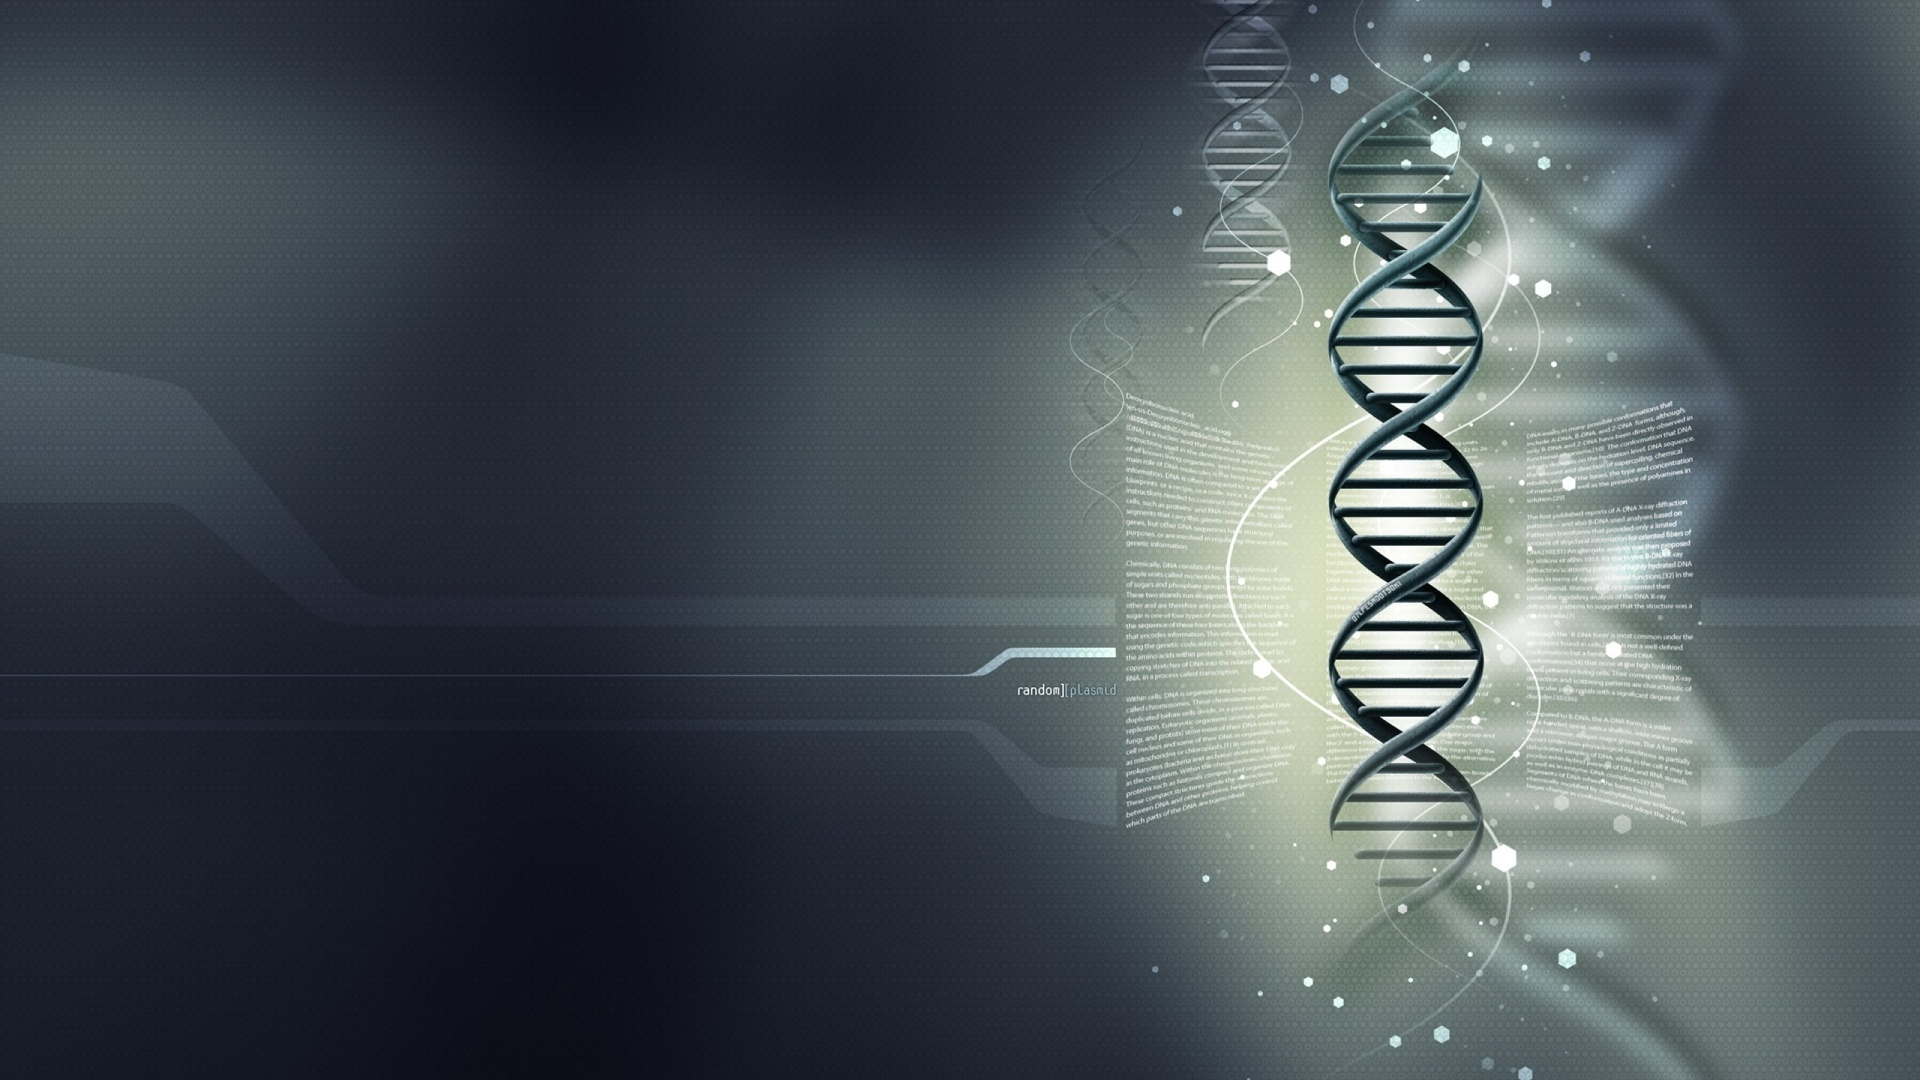 Dna wallpaper   883963 1920x1080